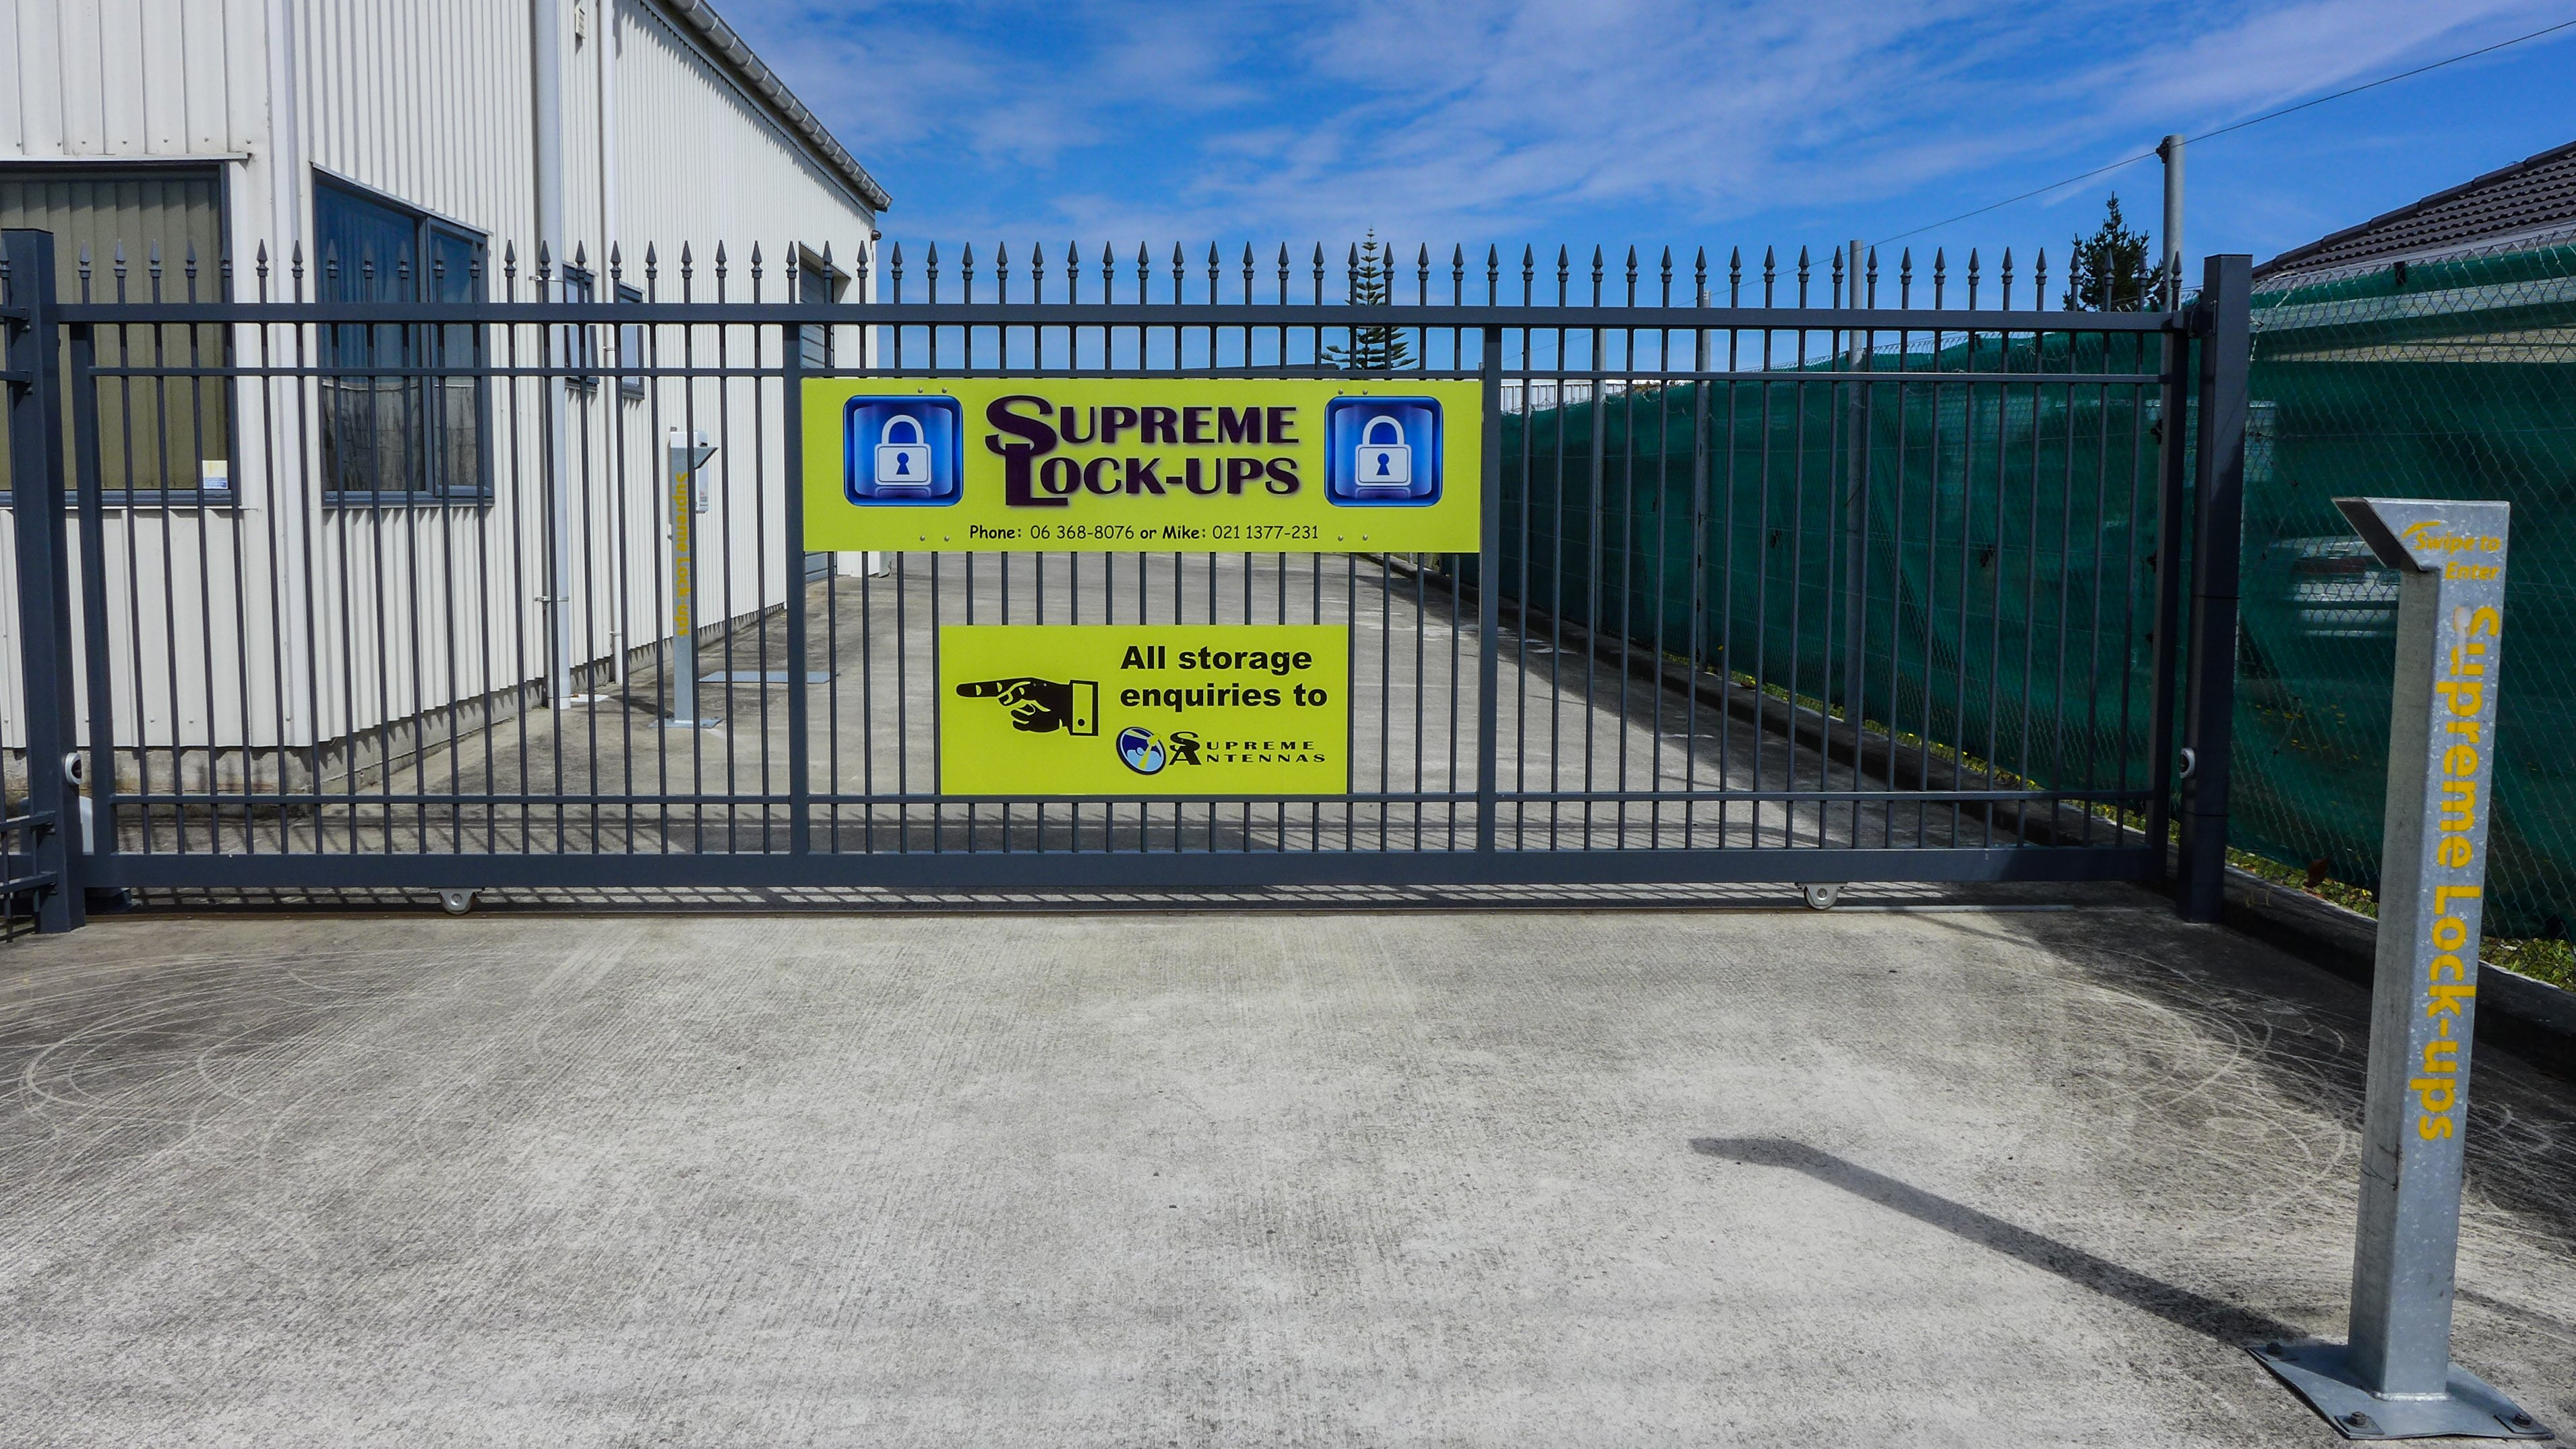 storage lockup or container at Supreme Lock-ups